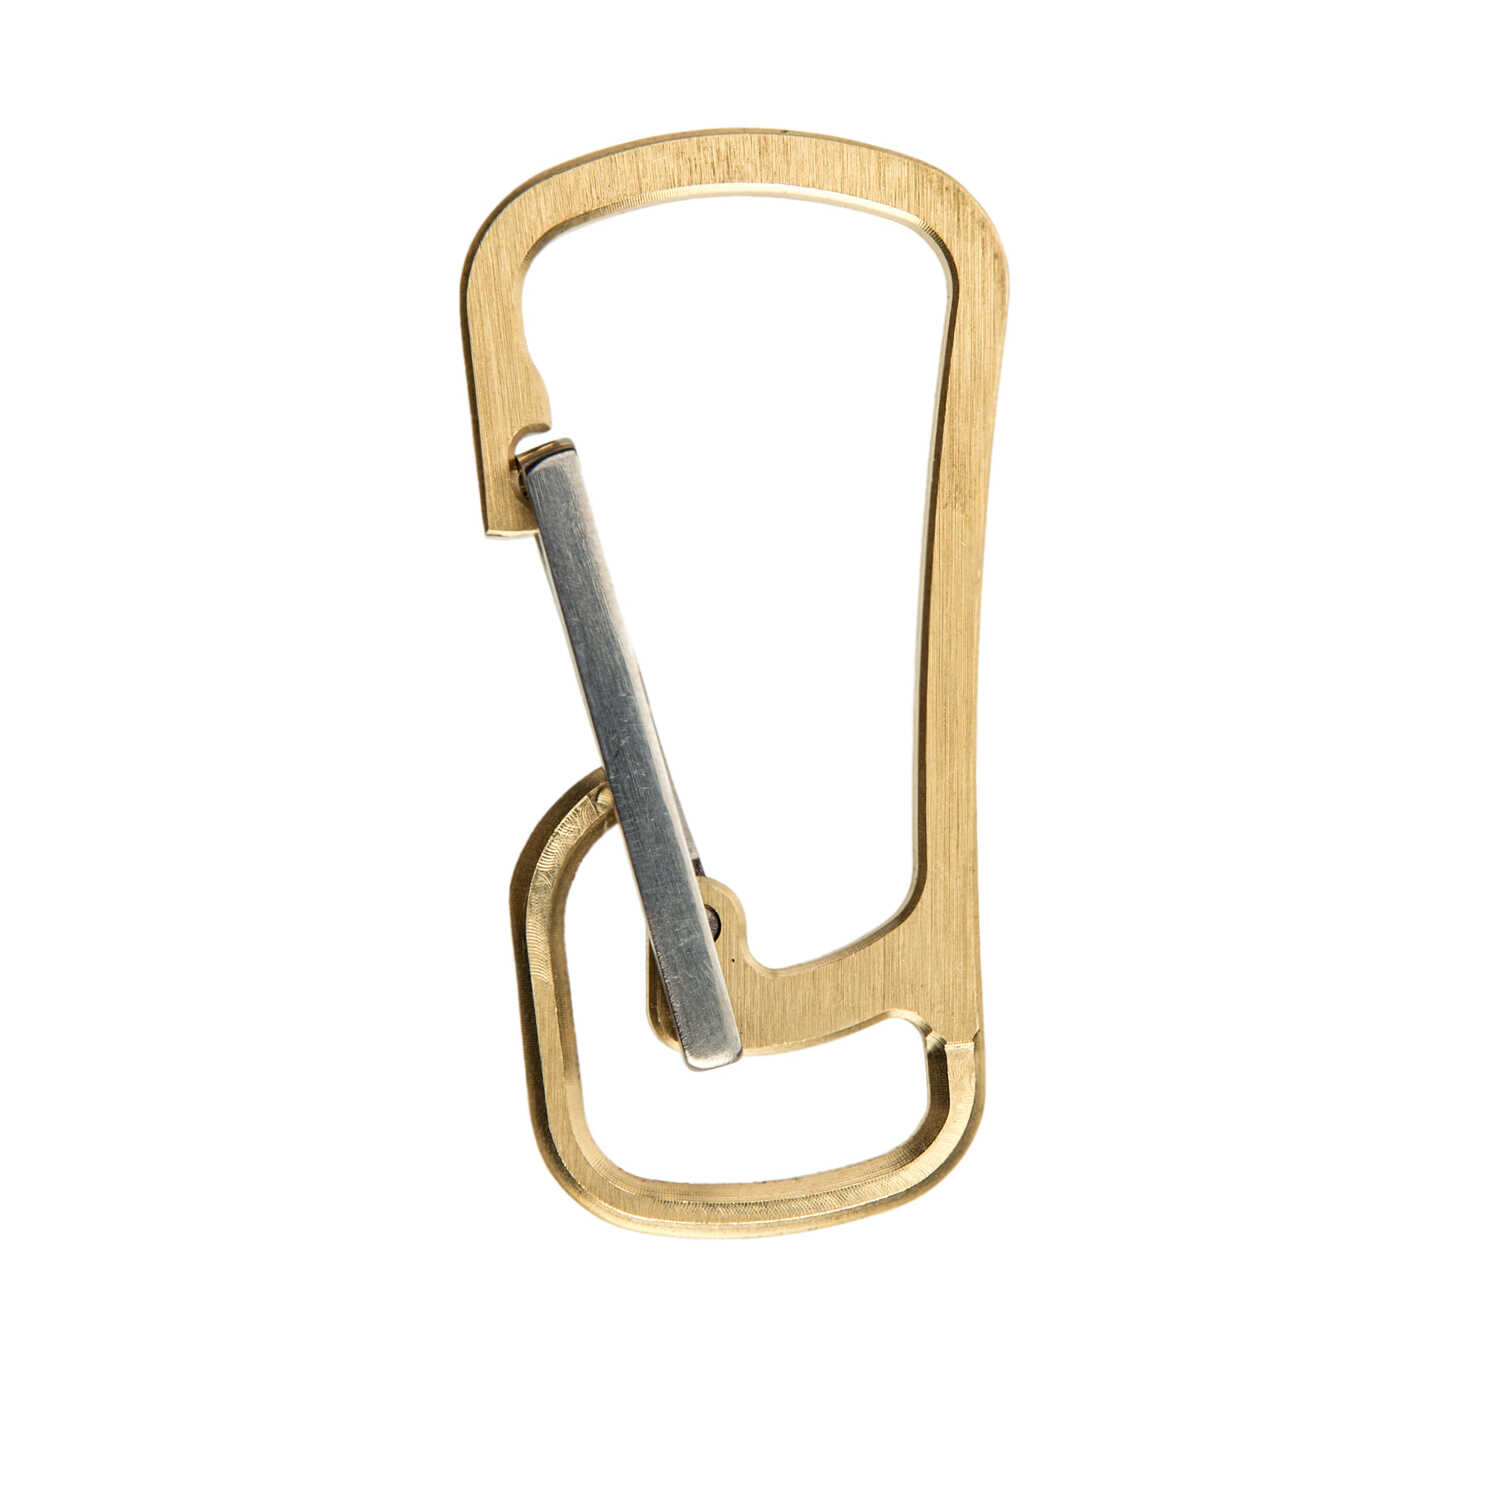 Klecker Knives  Stowaway Tools  Every day carry  Carabiner  Brass and Titanium  1 each